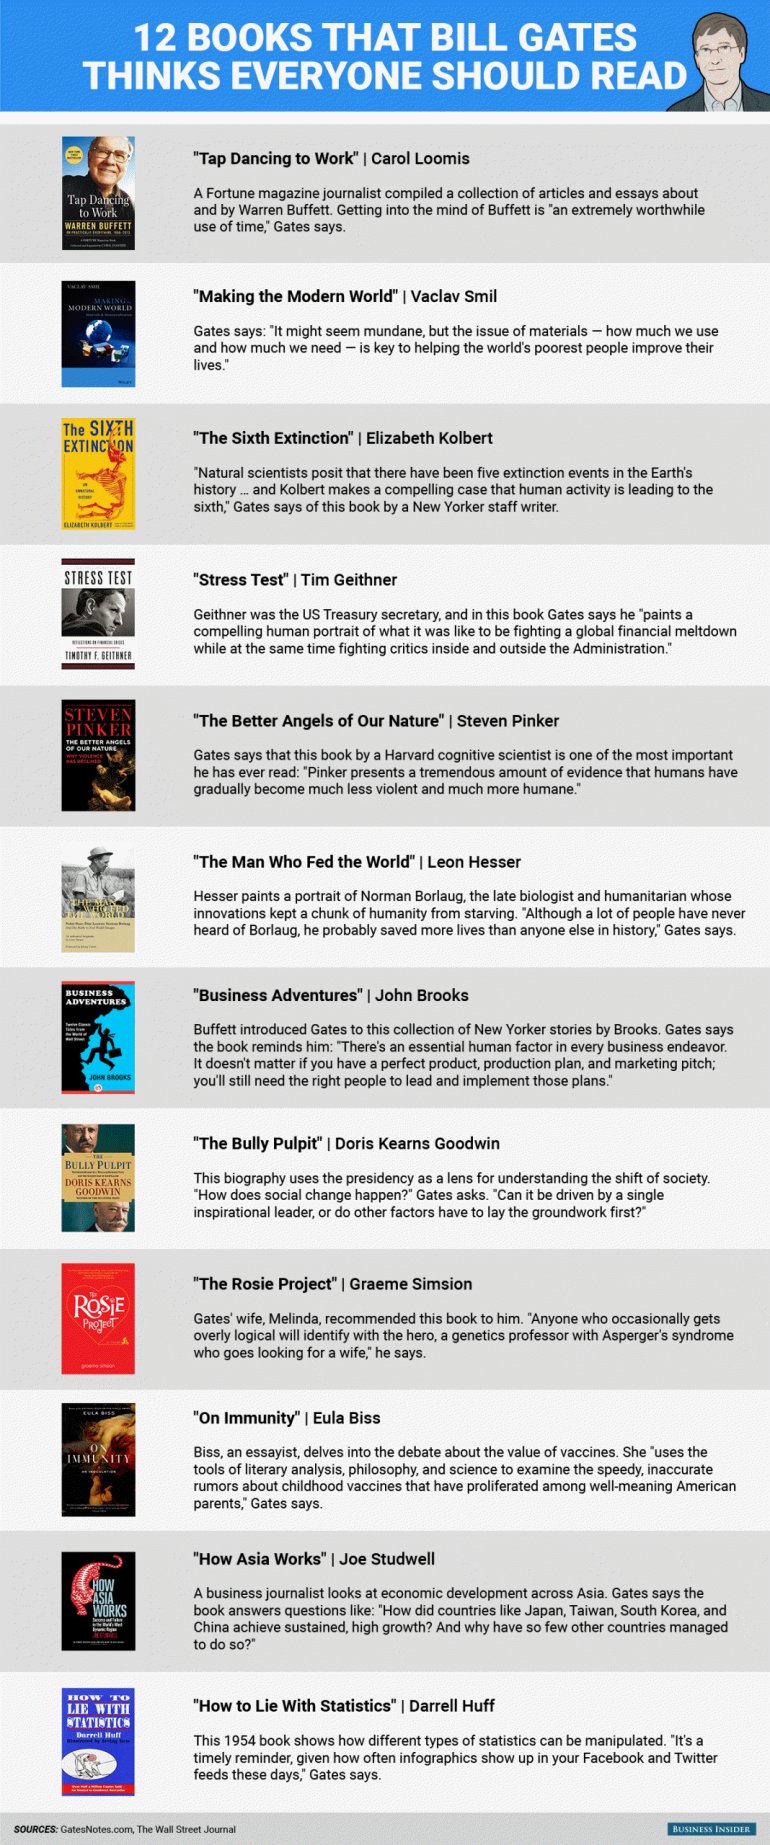 Infographic: 12 Books that Bill Gates Enjoyed and Recommends